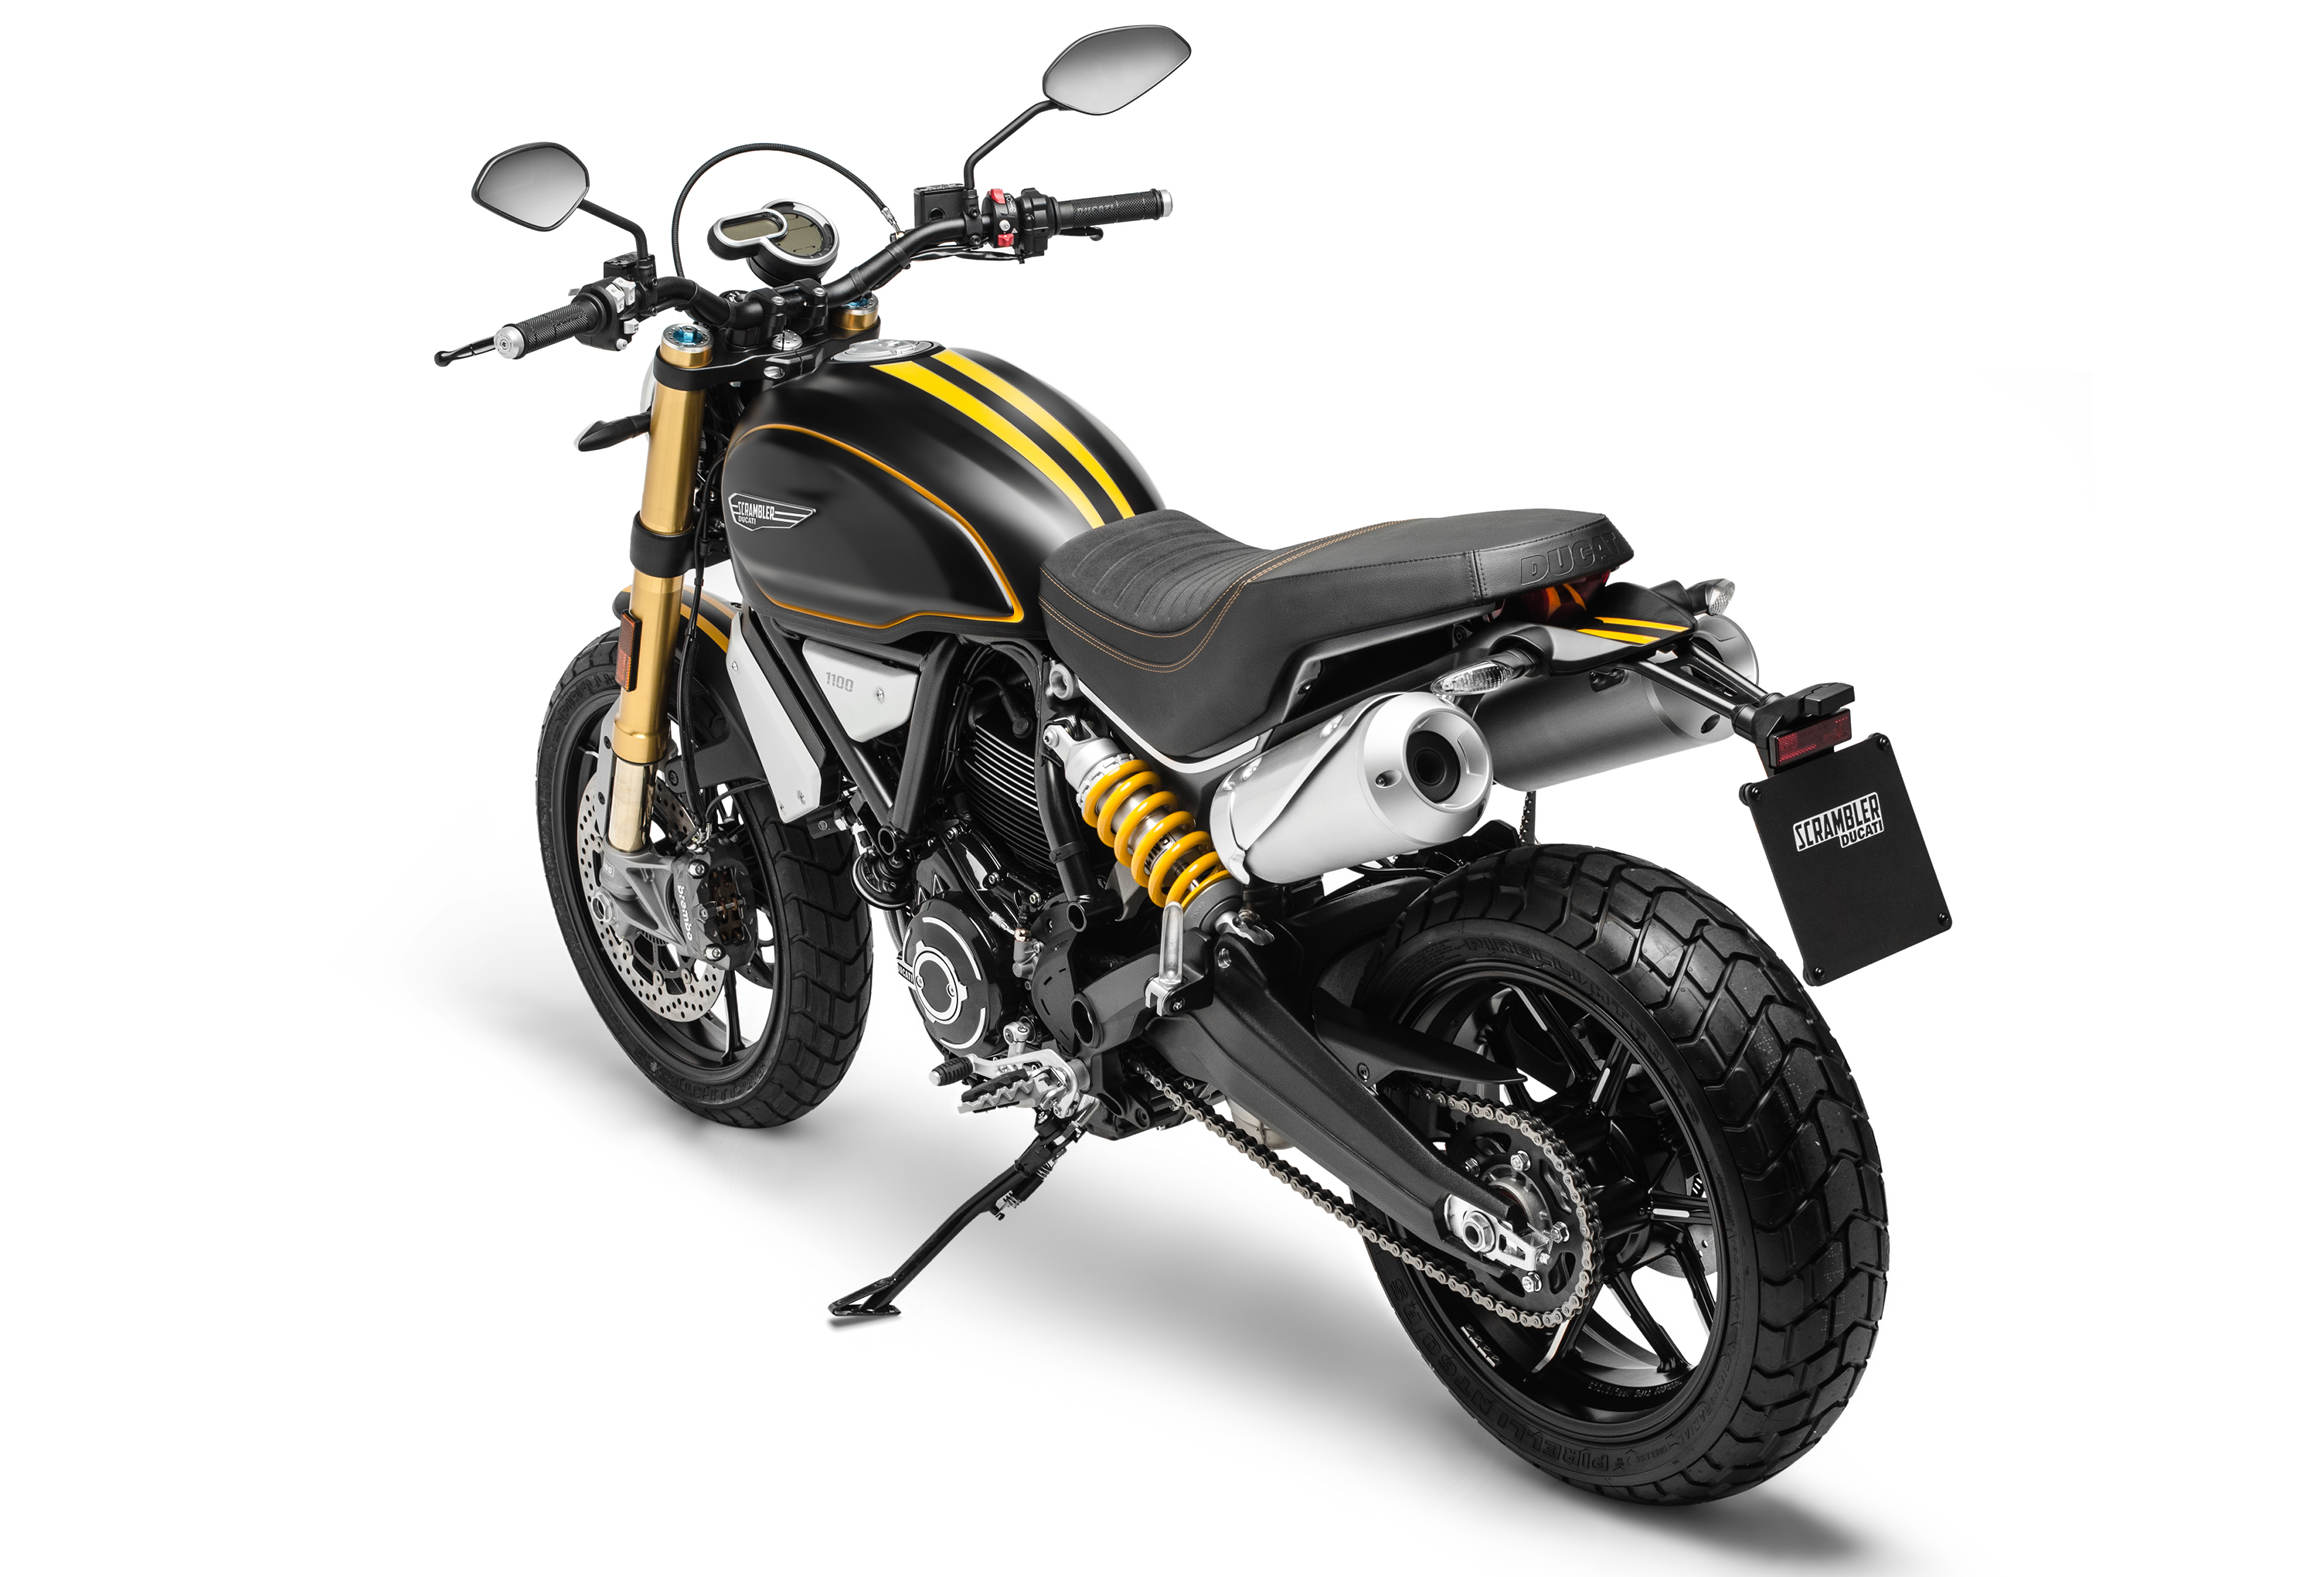 Motorcycle Safety Gear >> New Ducati Scrambler 1100 Models Offer Big Jump in Performance « MotorcycleDaily.com ...